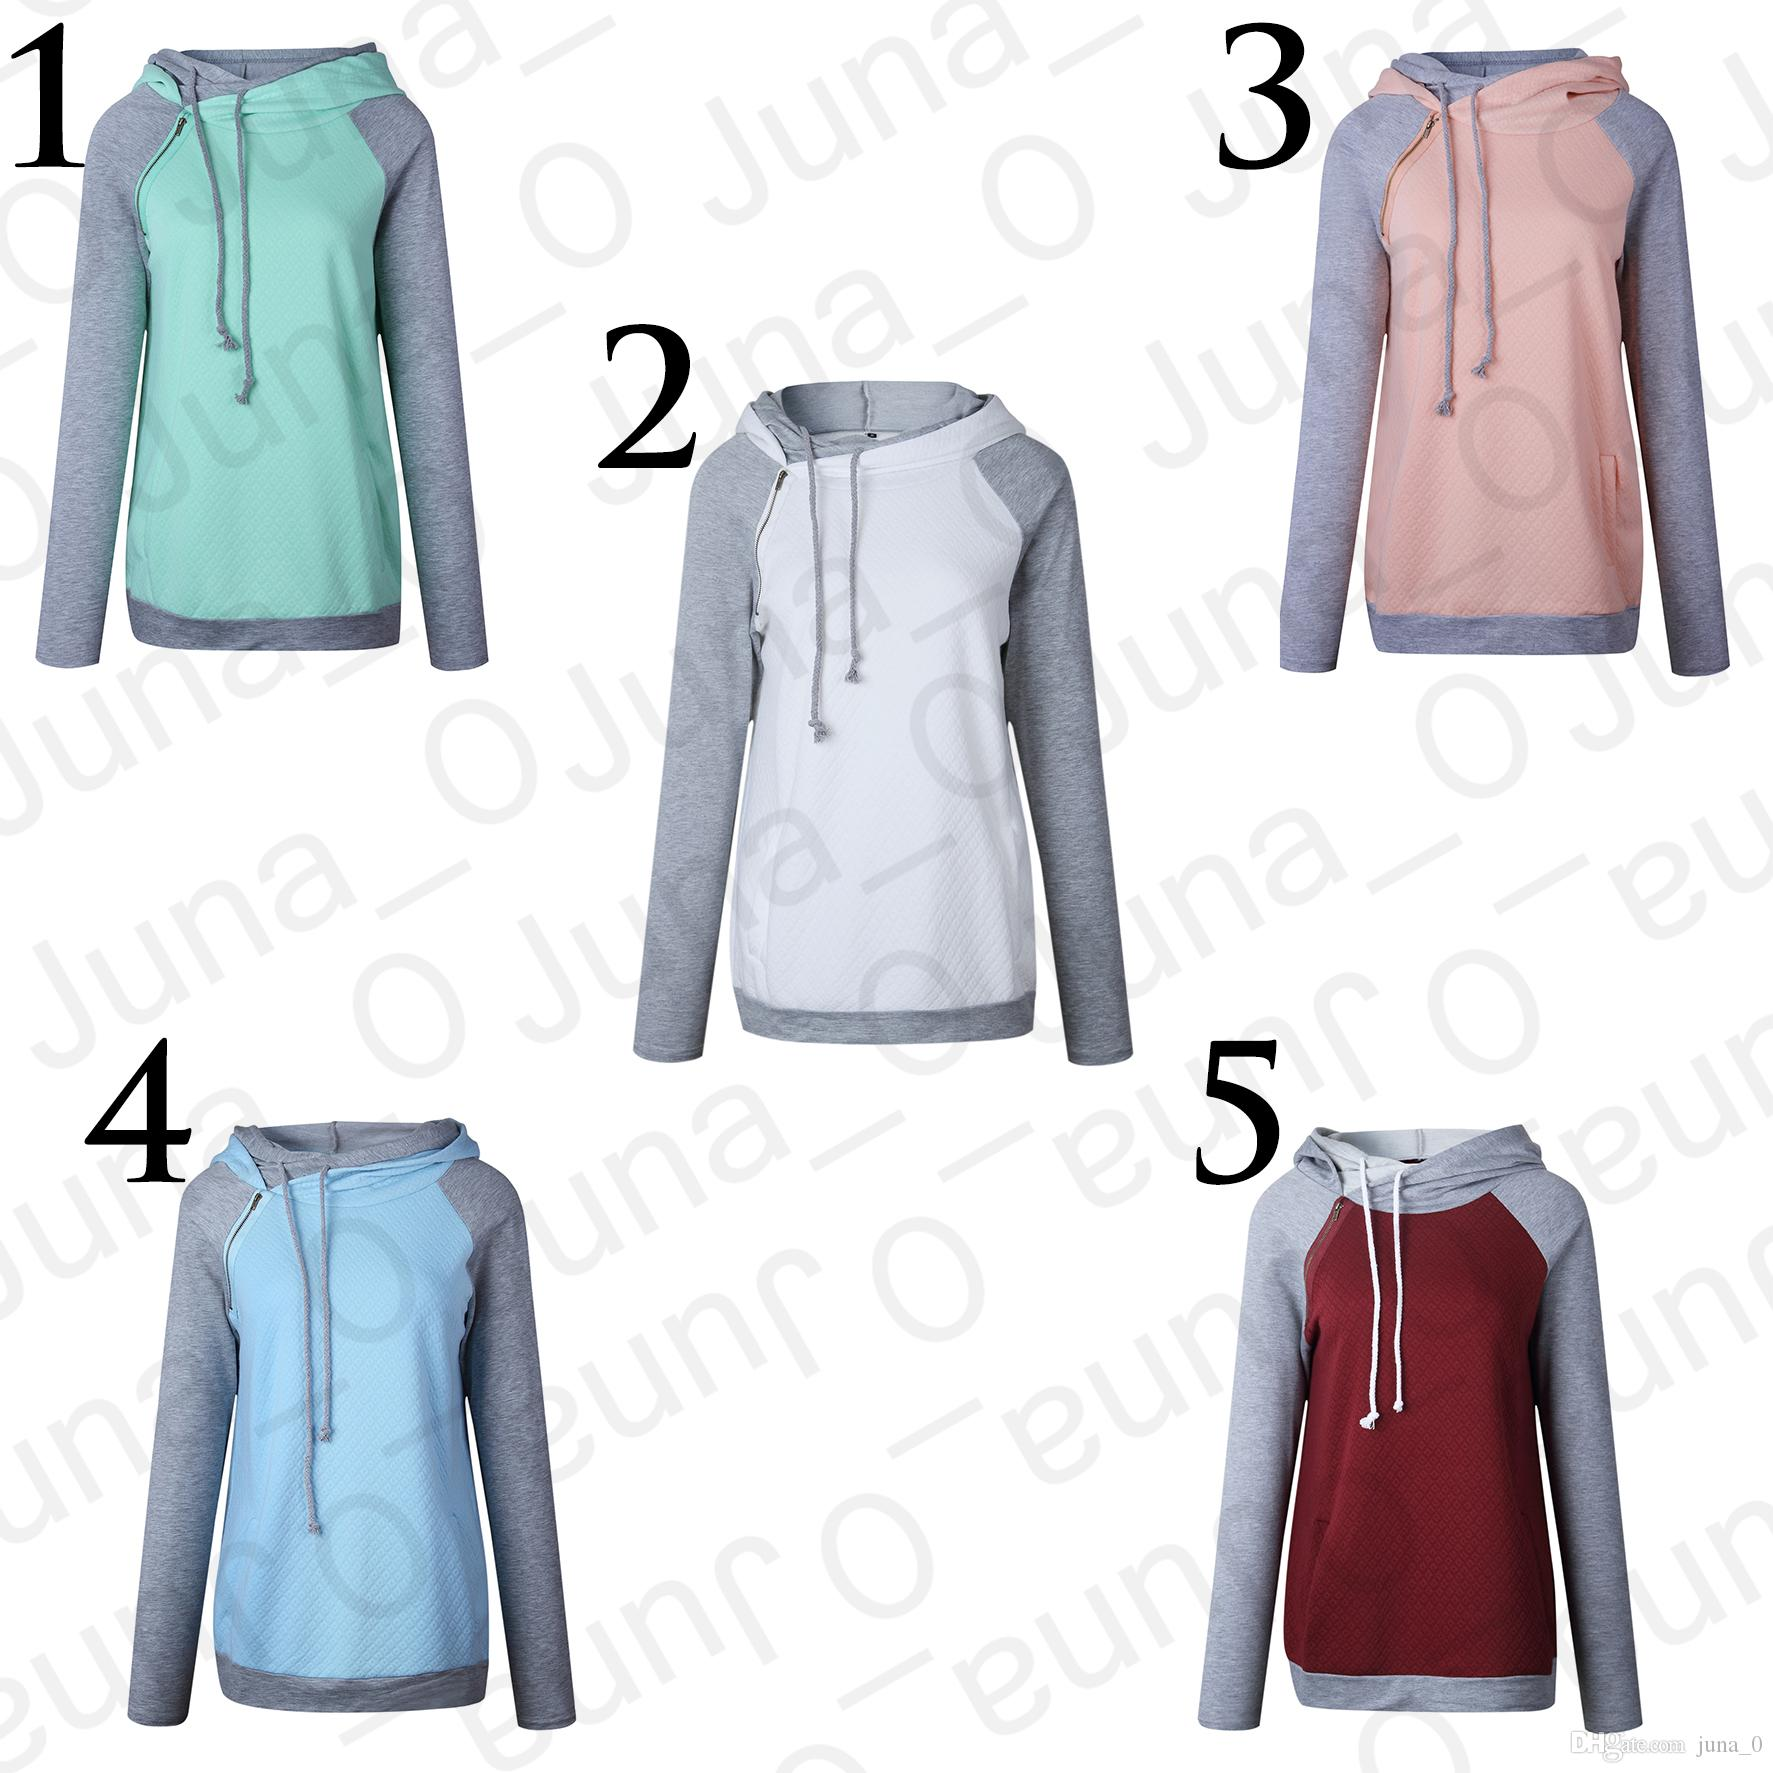 6d02112d26f Newest Women Long Sleeve Hoodie Women s Double Hooded Cotton Stripe T Shirt  Funnel Neck Banded Bottom Casual Pullover Sweatshirt with Pocket Women s  Hoodies ...